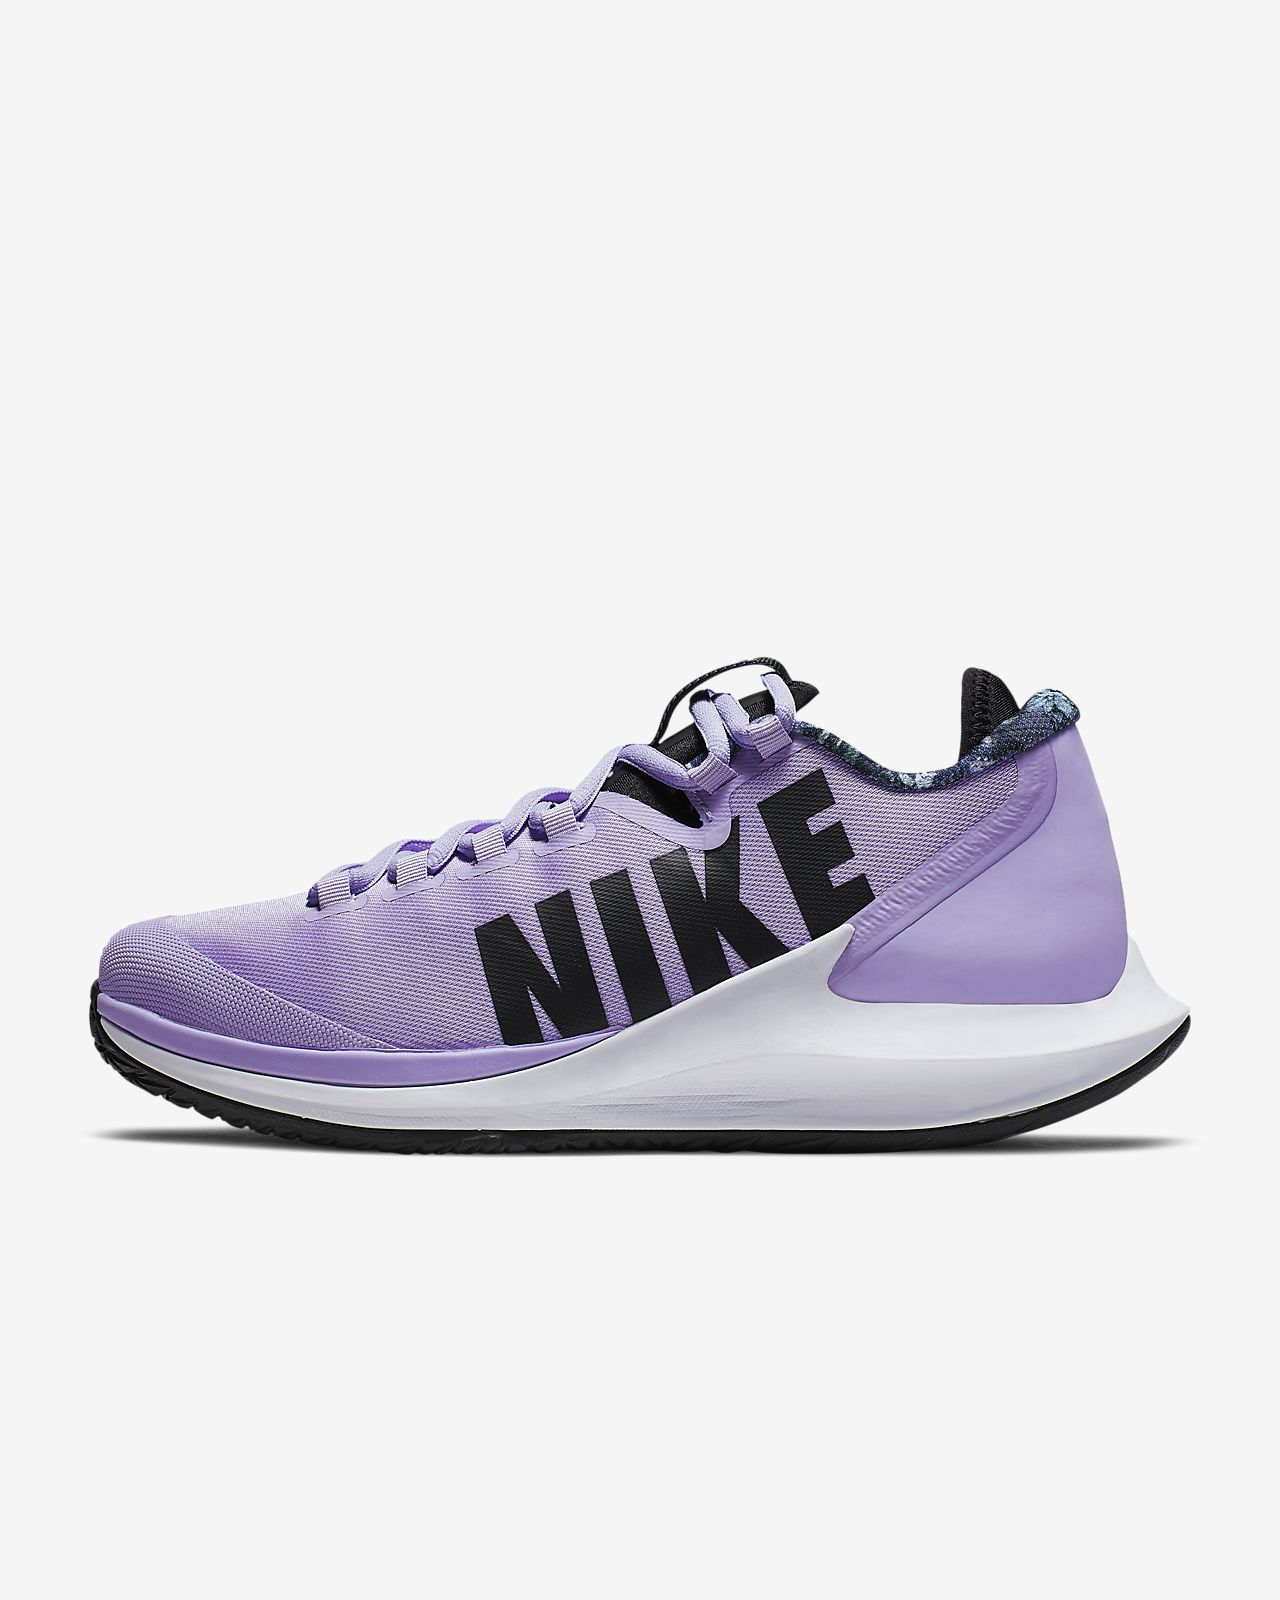 NikeCourt Air Zoom Zero Damen-Tennisschuh